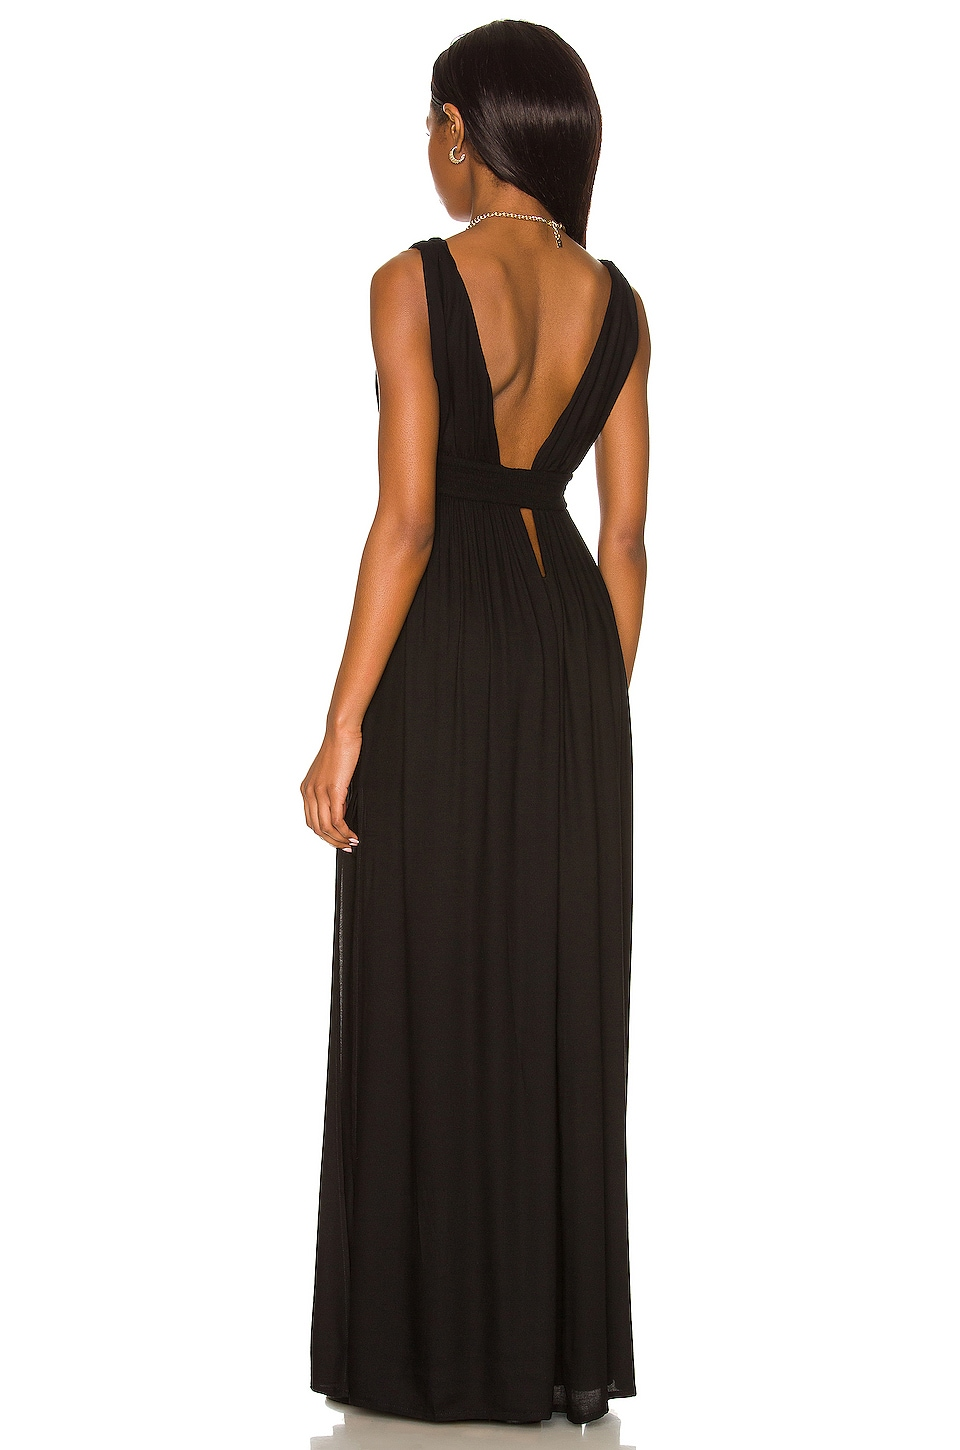 Indah Anjeli Empire Maxi Dress in Black